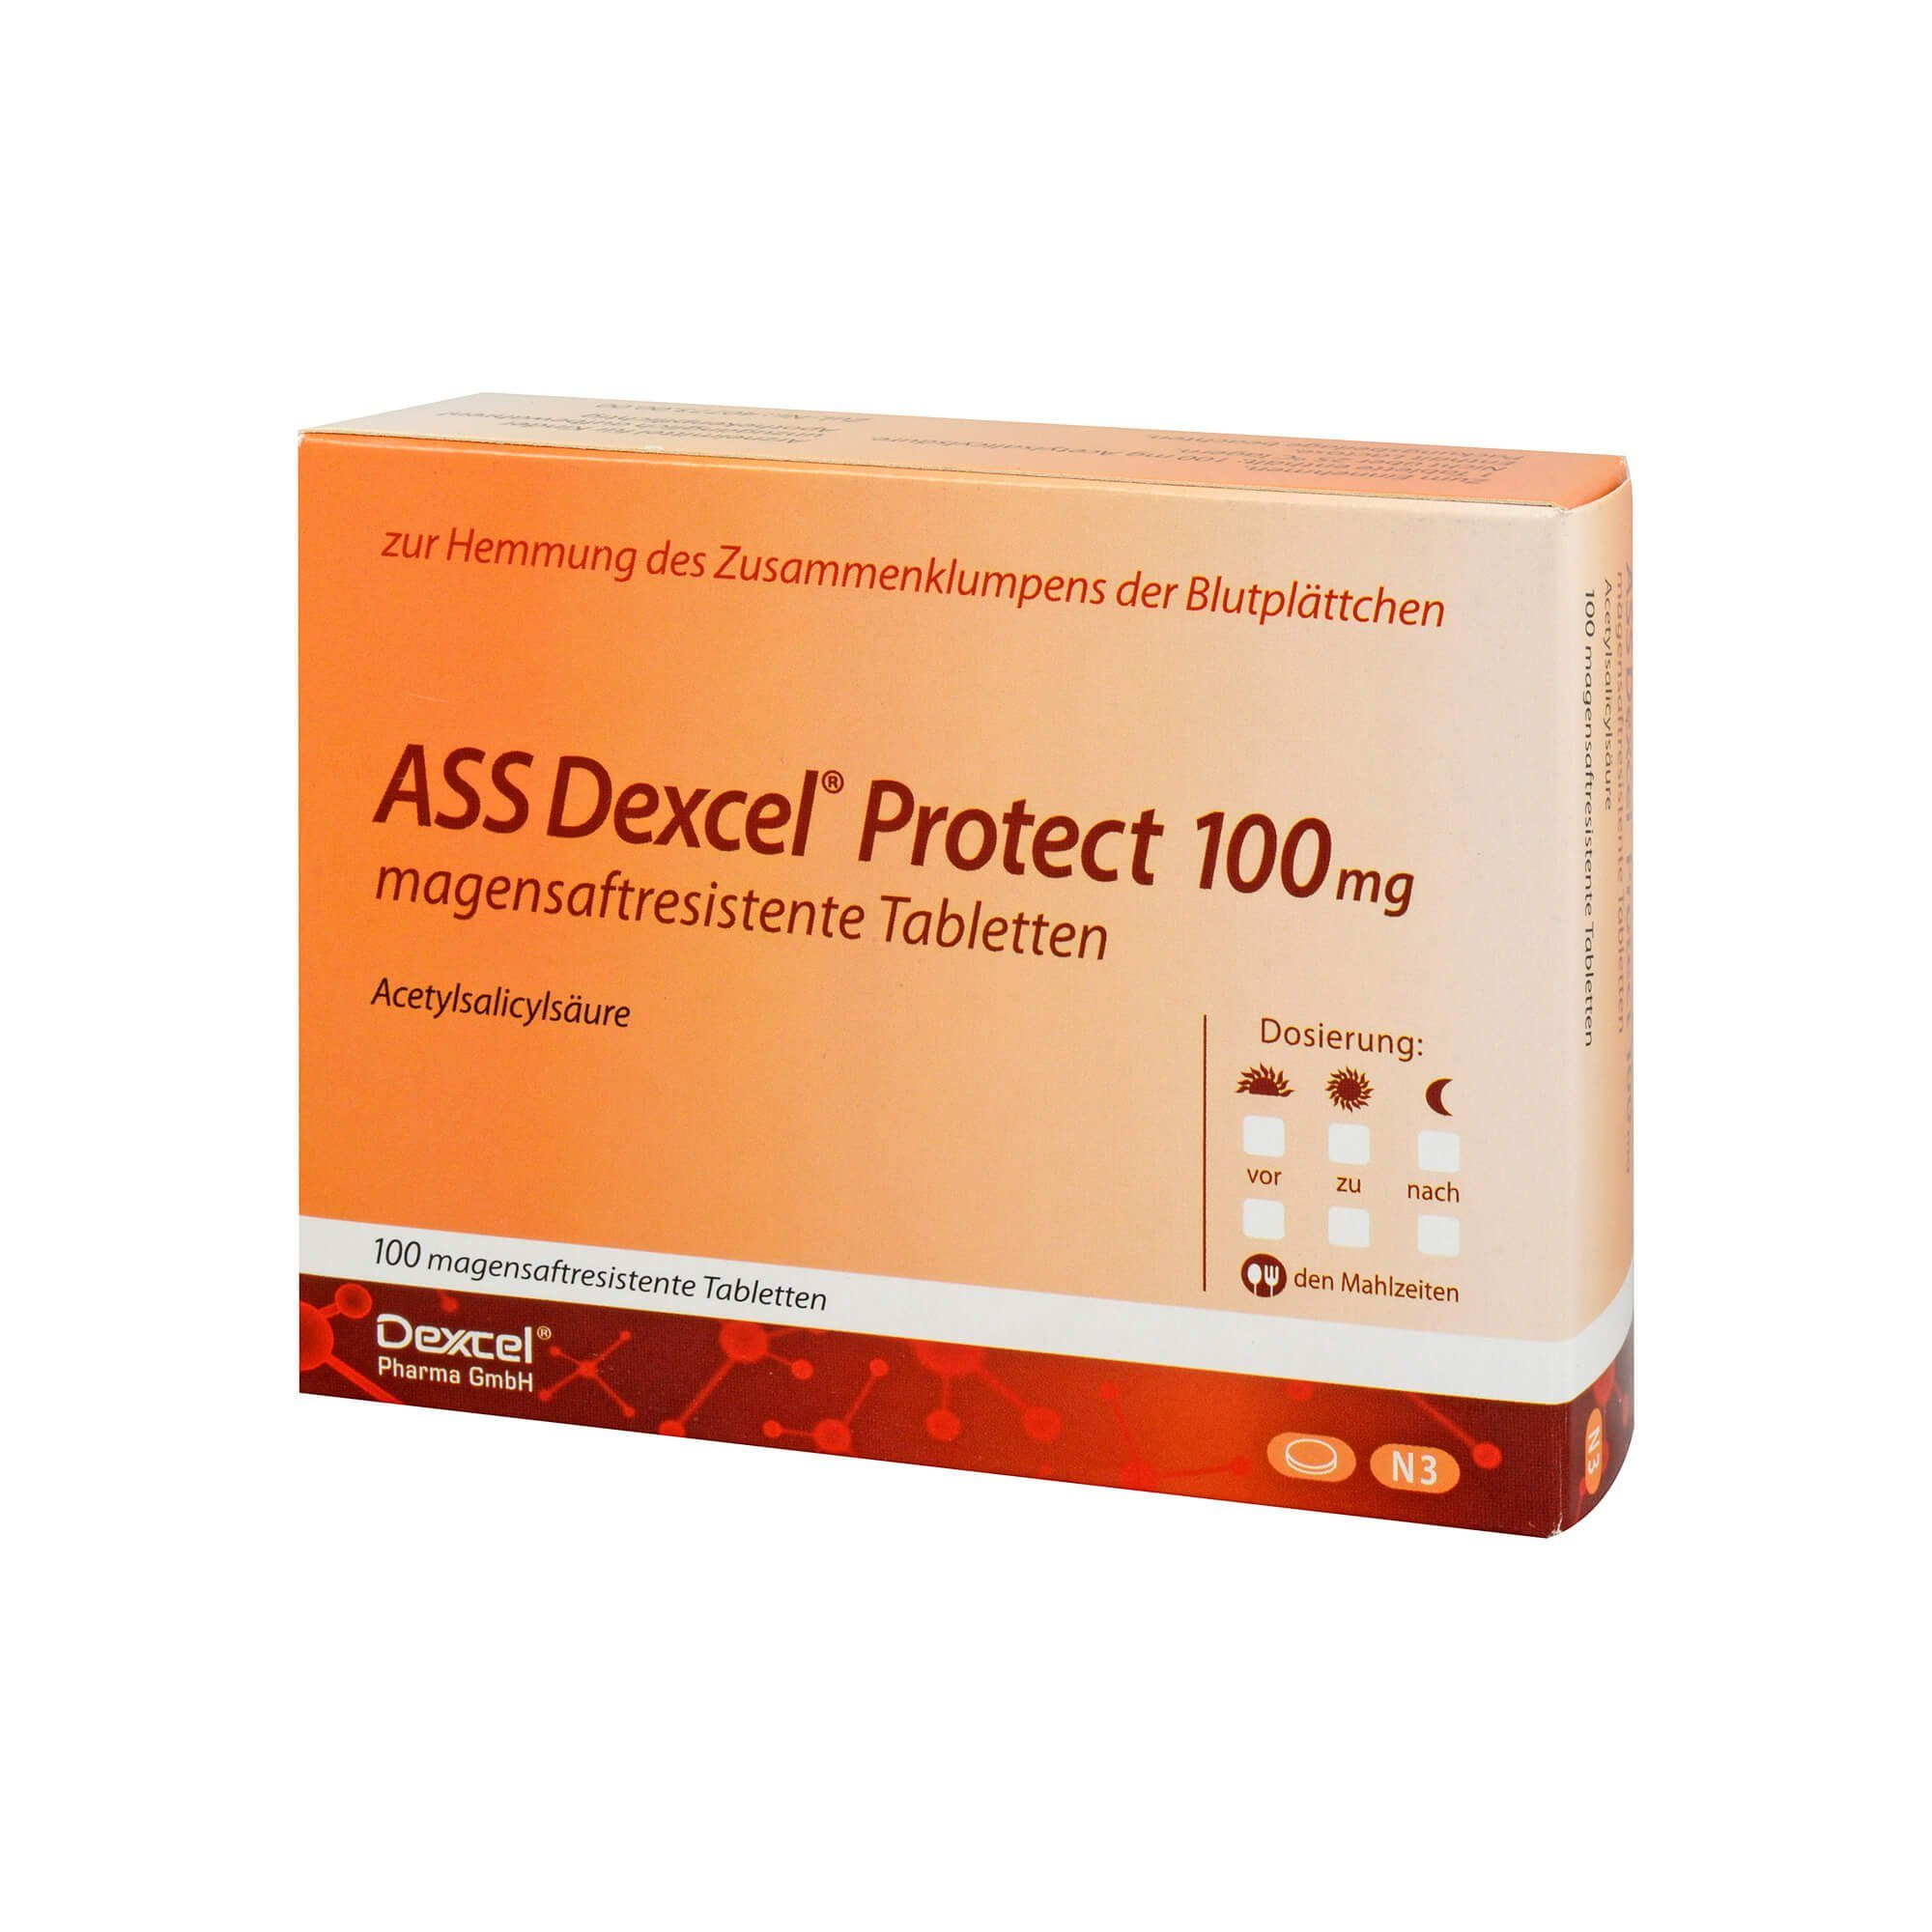 ASS DEXCEL Protect 100mg, 100 St